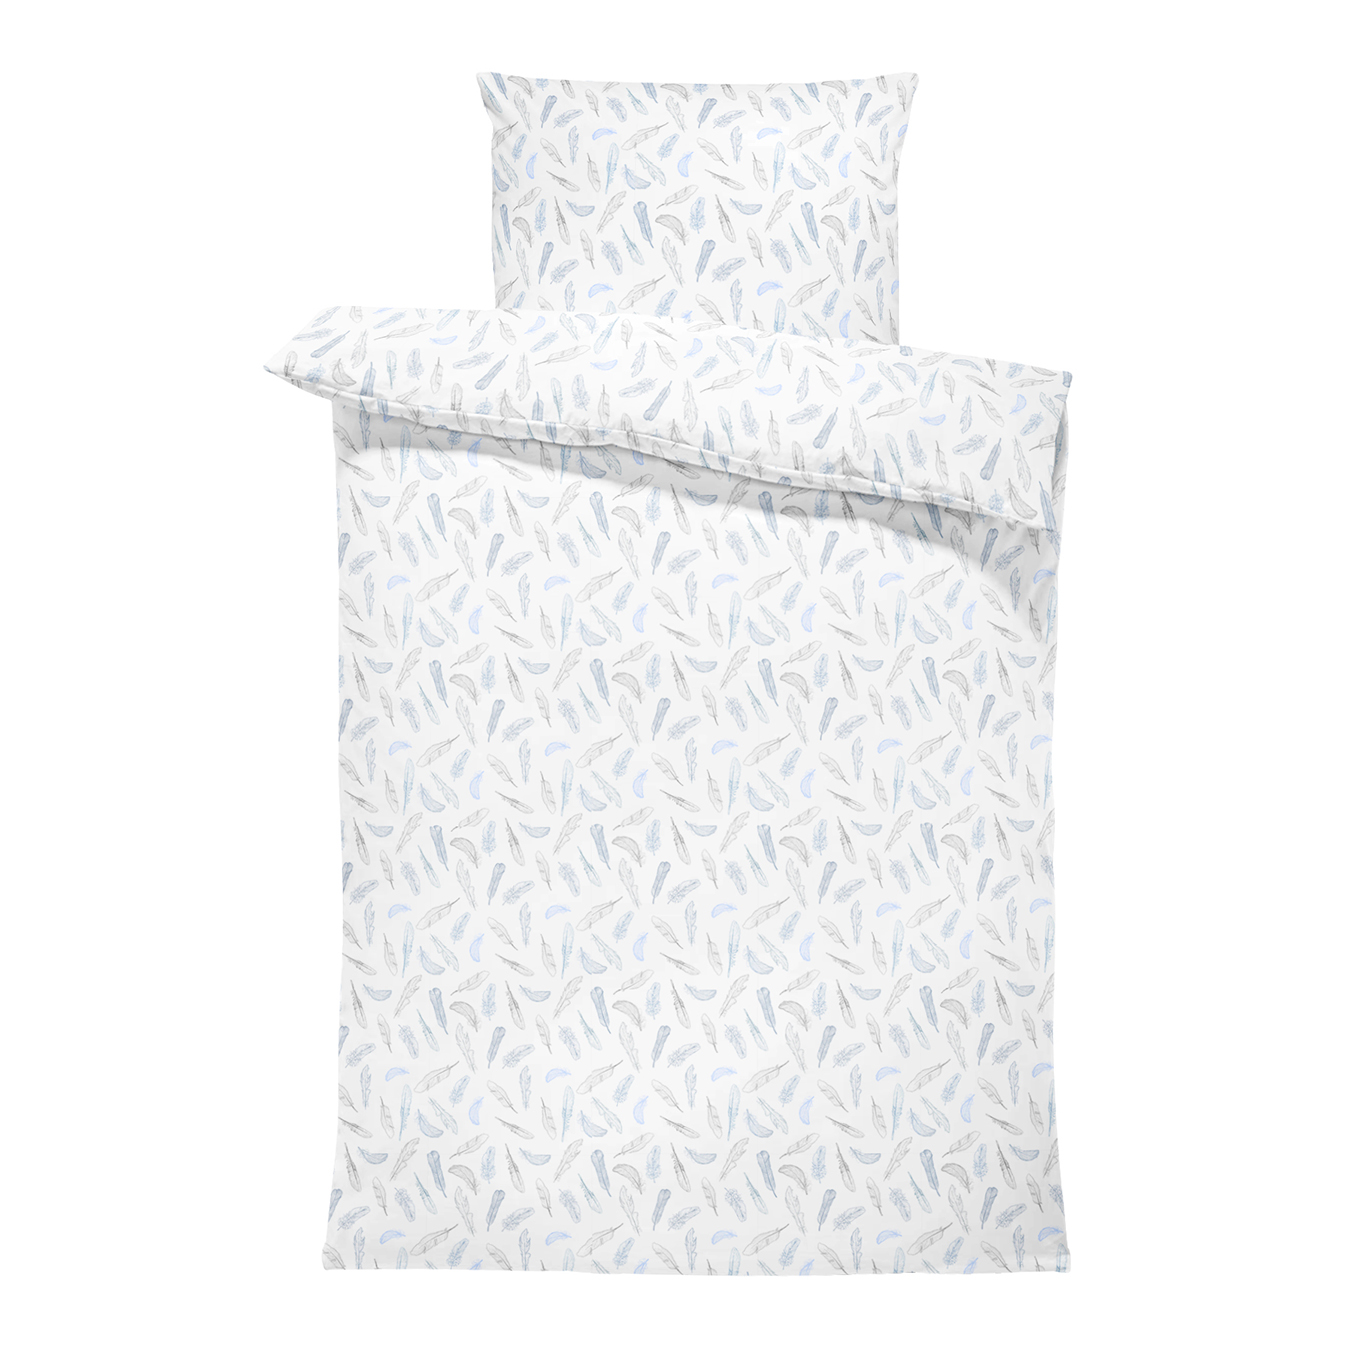 Bamboo bedding cover set S Heavenly feathers